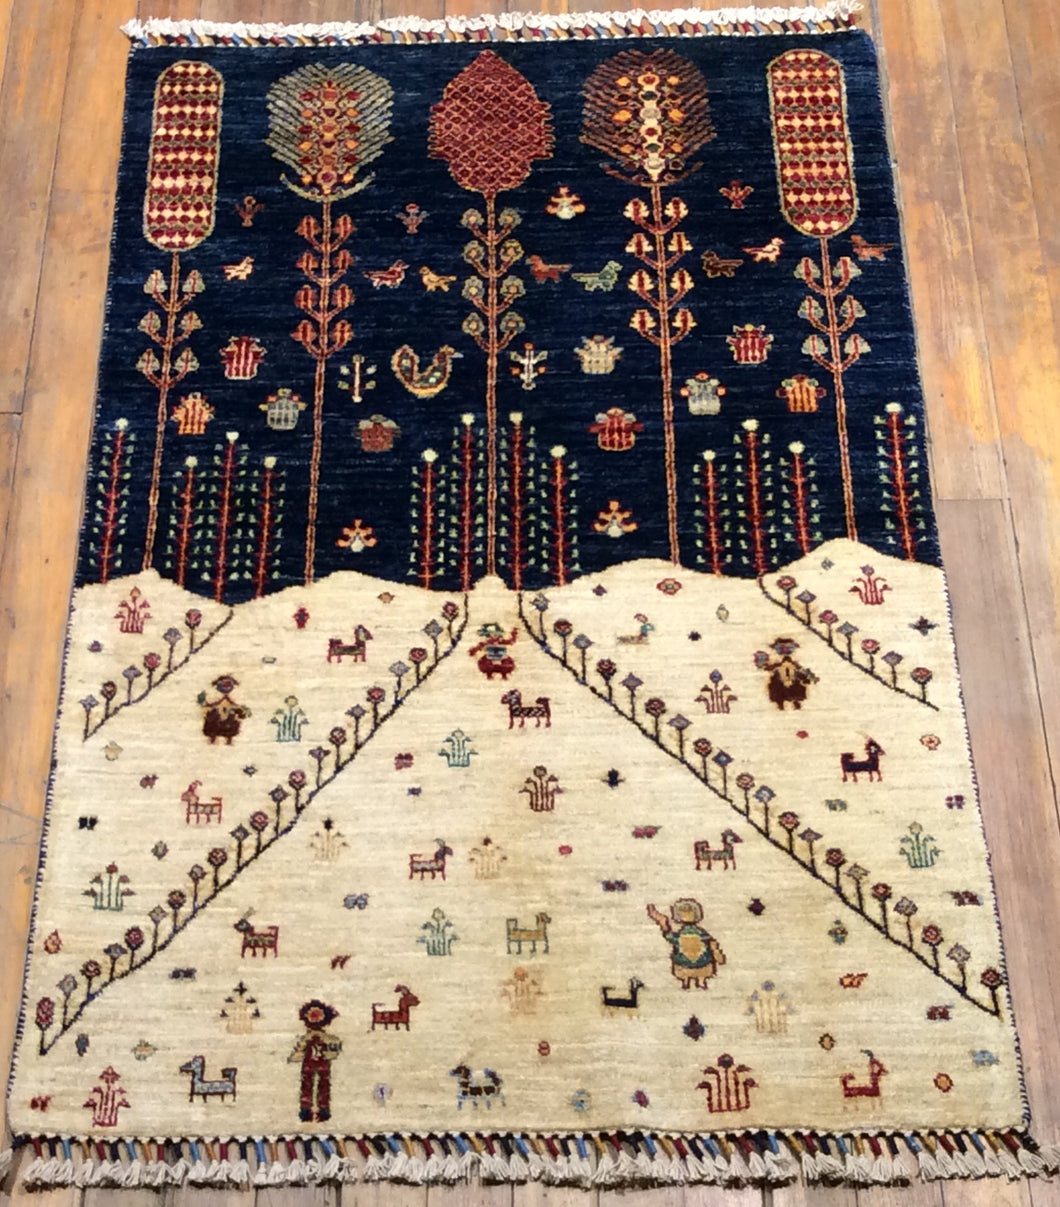 Village Arts and Crafts Rug.  5' x 3'.2